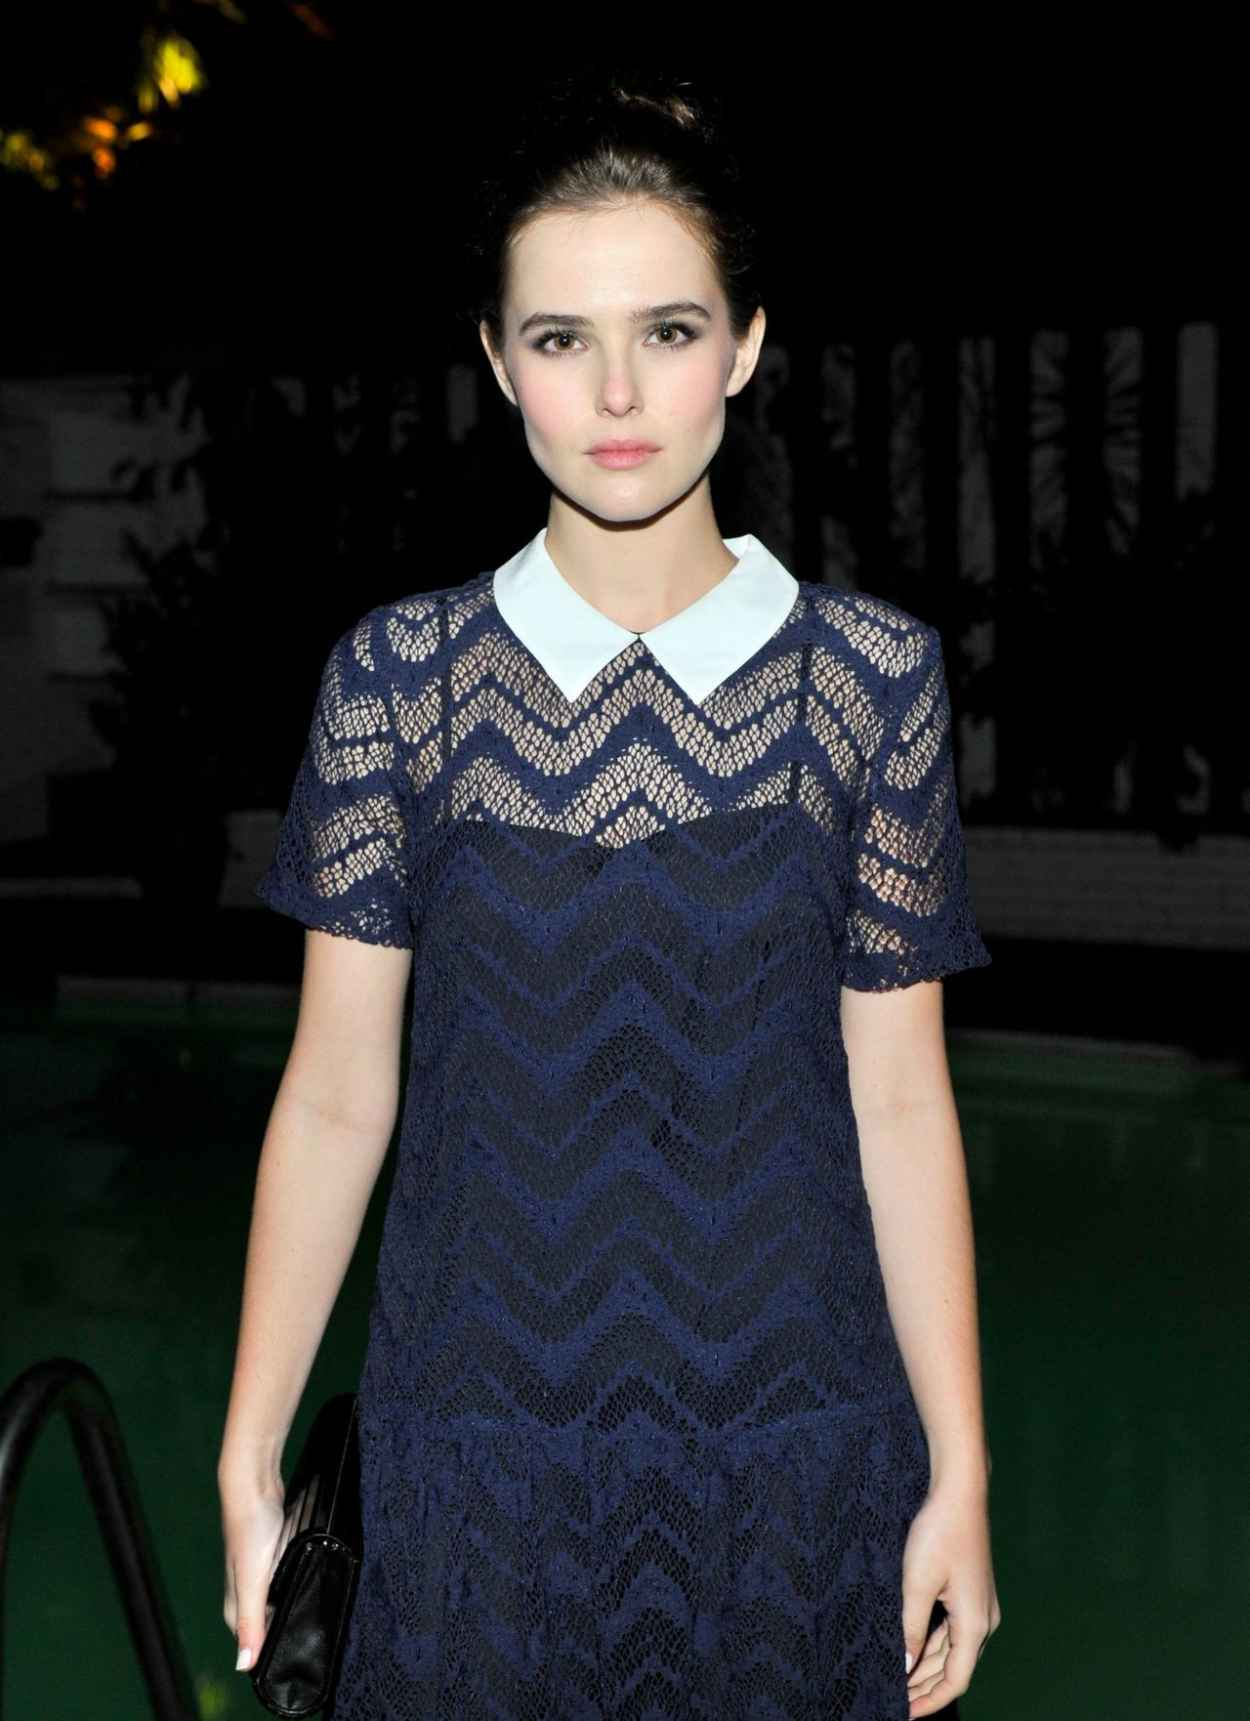 Zoey Deutch in Sandro -Rodeo- Sheer Textured Navy Dress at Sandro Paris Celebration in Los Angeles-1